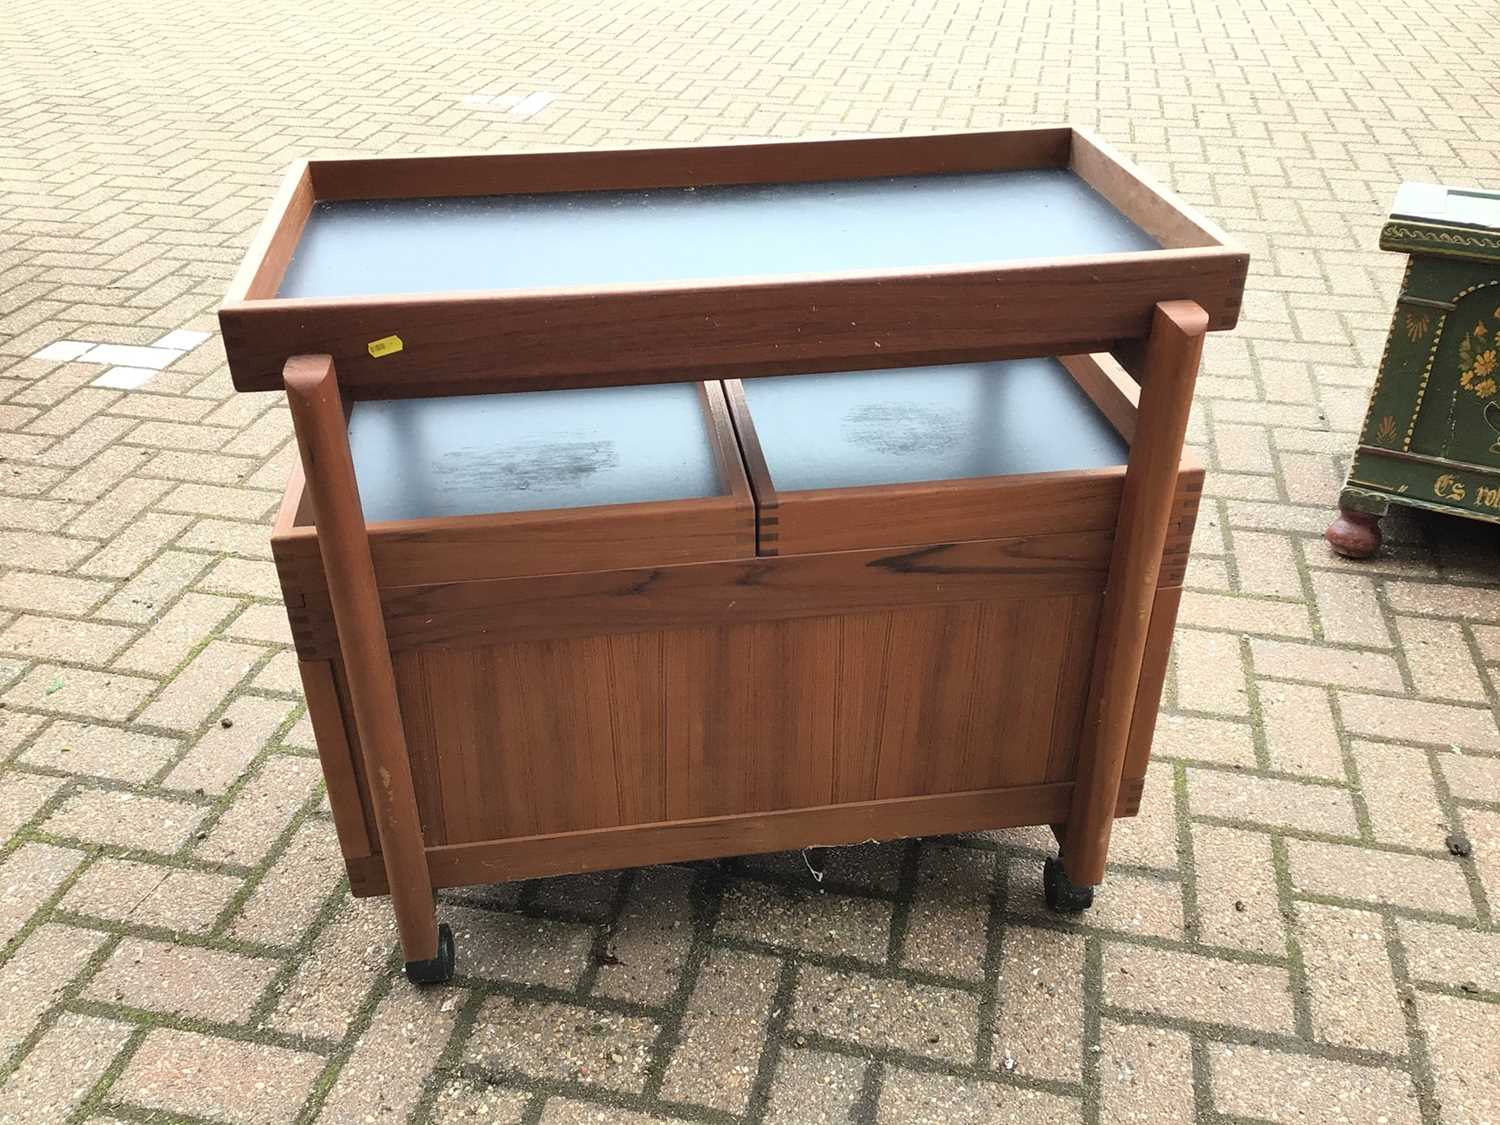 Mid century teak drinks trolley with removable tray top, two pull out slides enclosing bottle holder